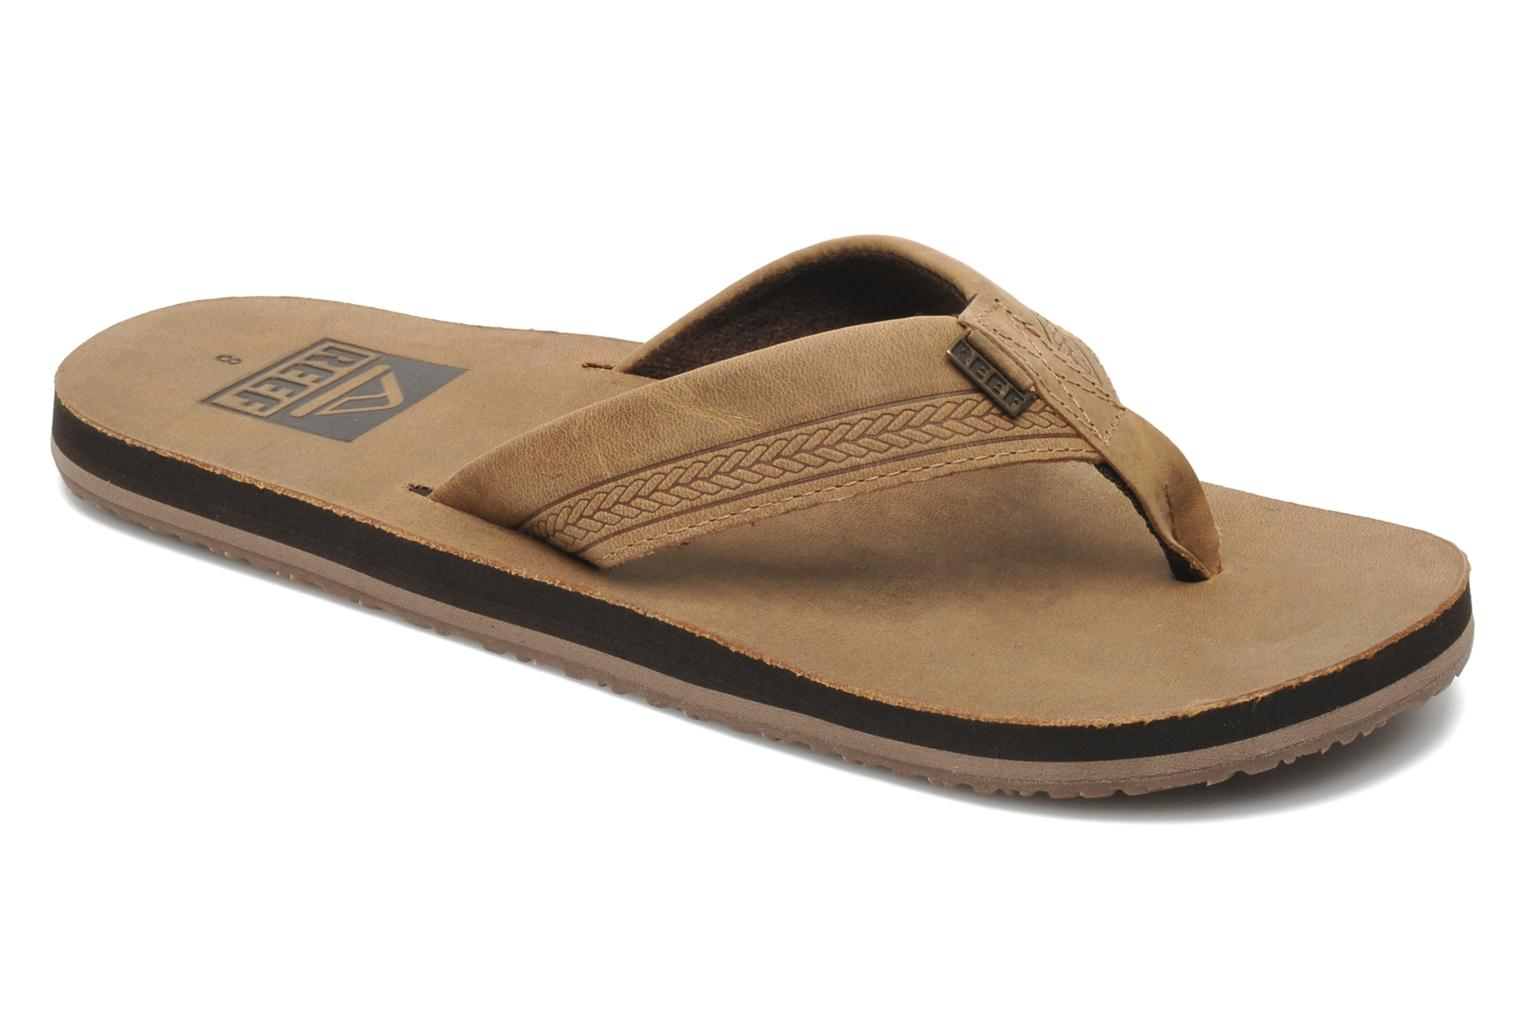 Slippers Sur by Reef